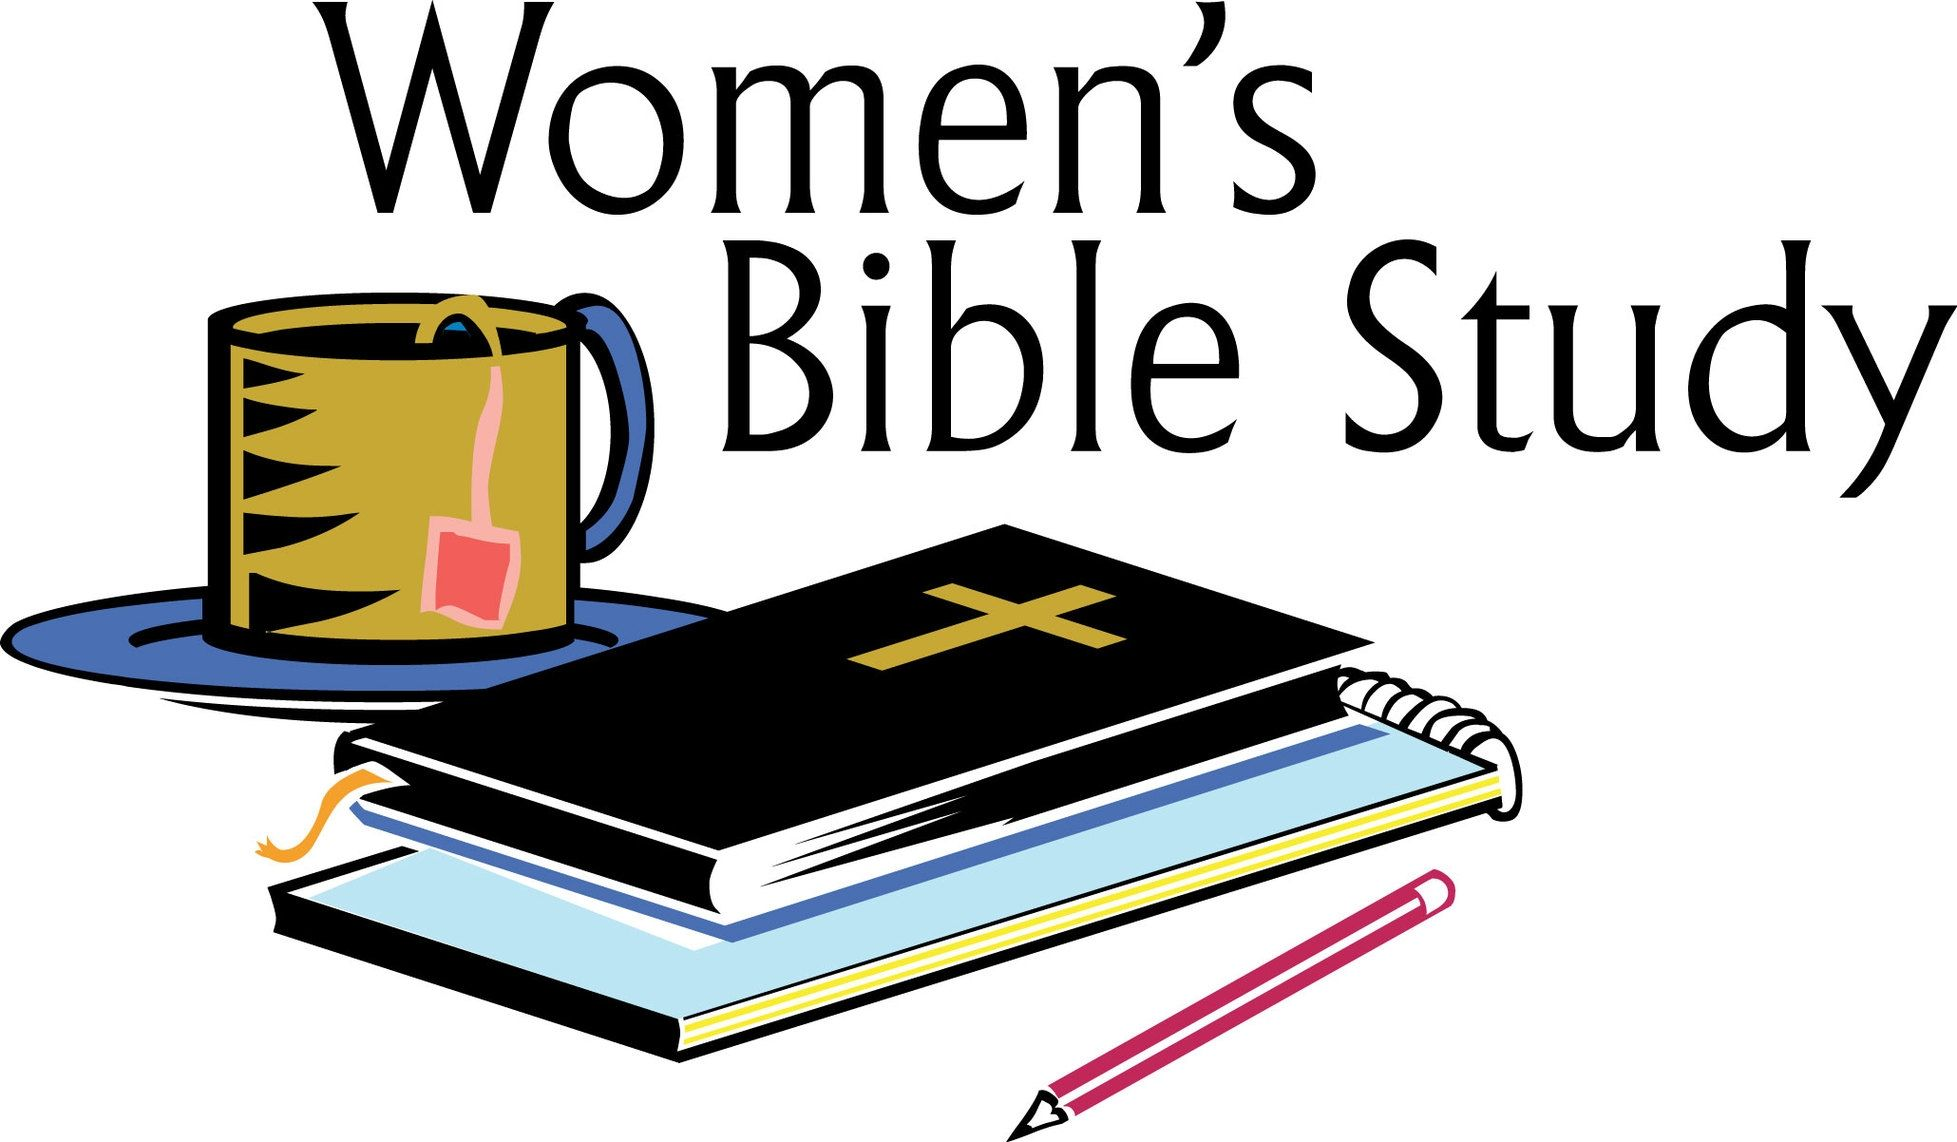 Free Ladies Bible Study Clipart.